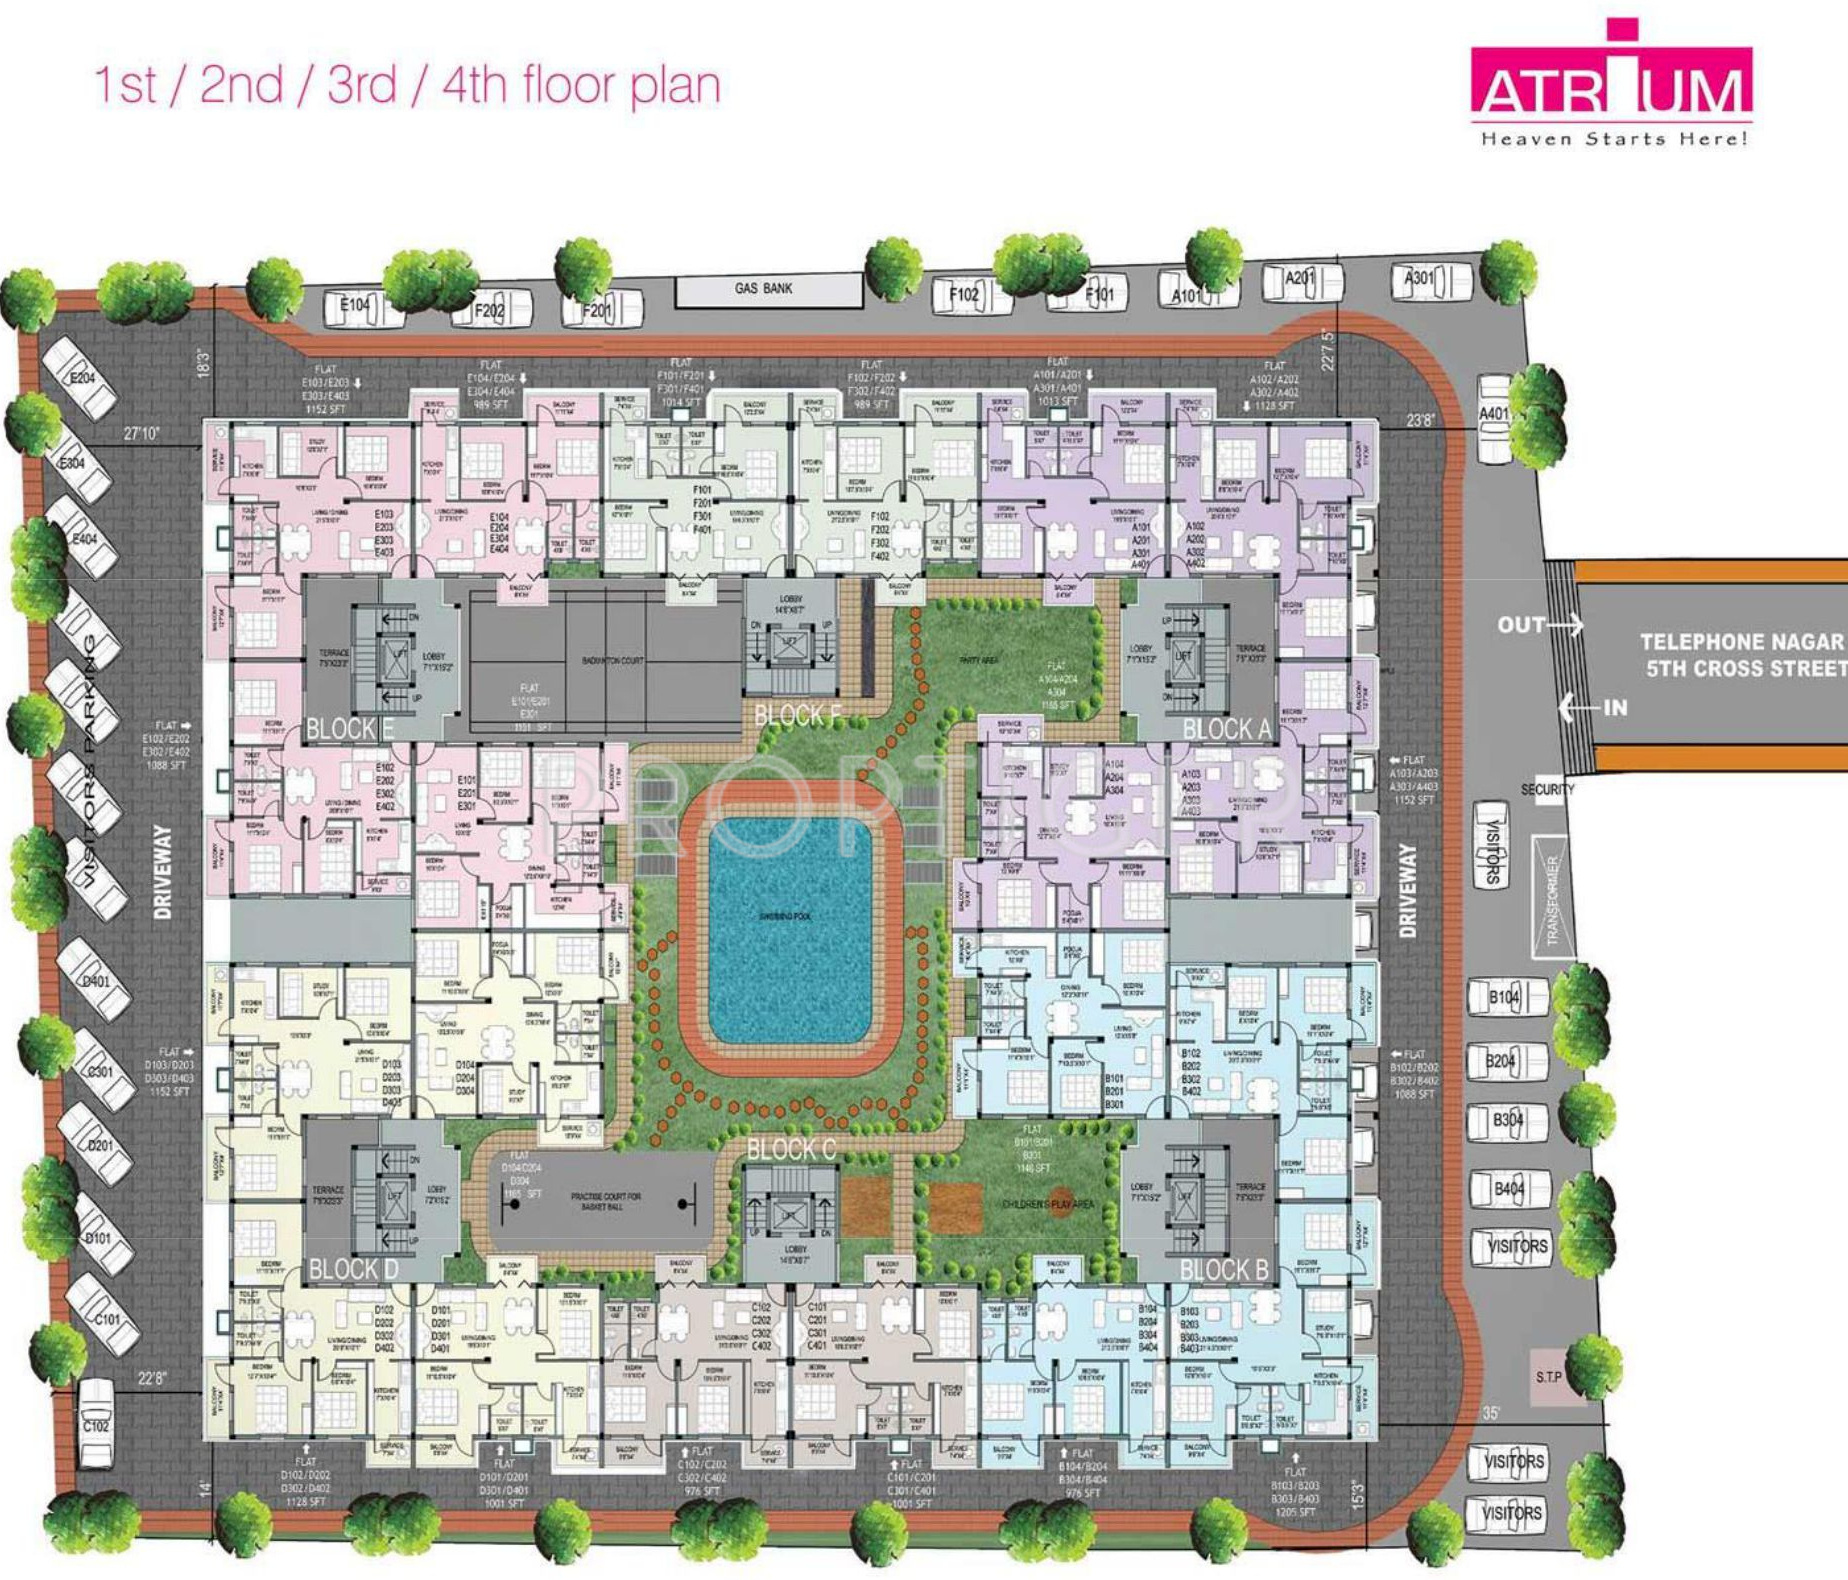 Urban tree atrium in perungudi chennai price location for House plans with atrium in center